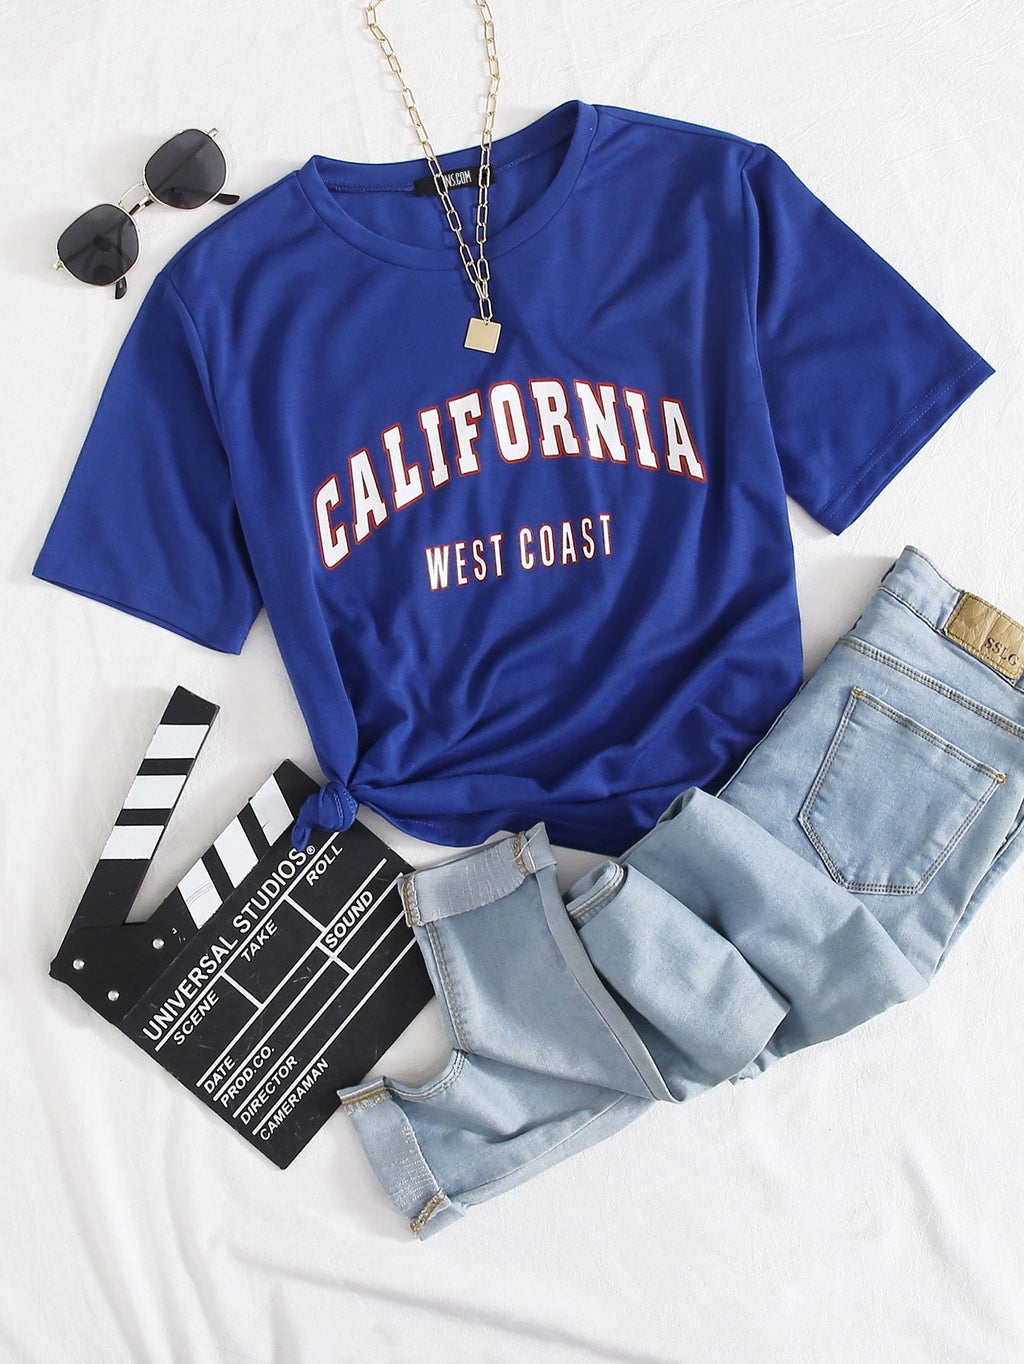 Roll Up Sleeve Letter Graphic Tee - INS | Online Fashion Free Shipping Clothing, Dresses, Tops, Shoes